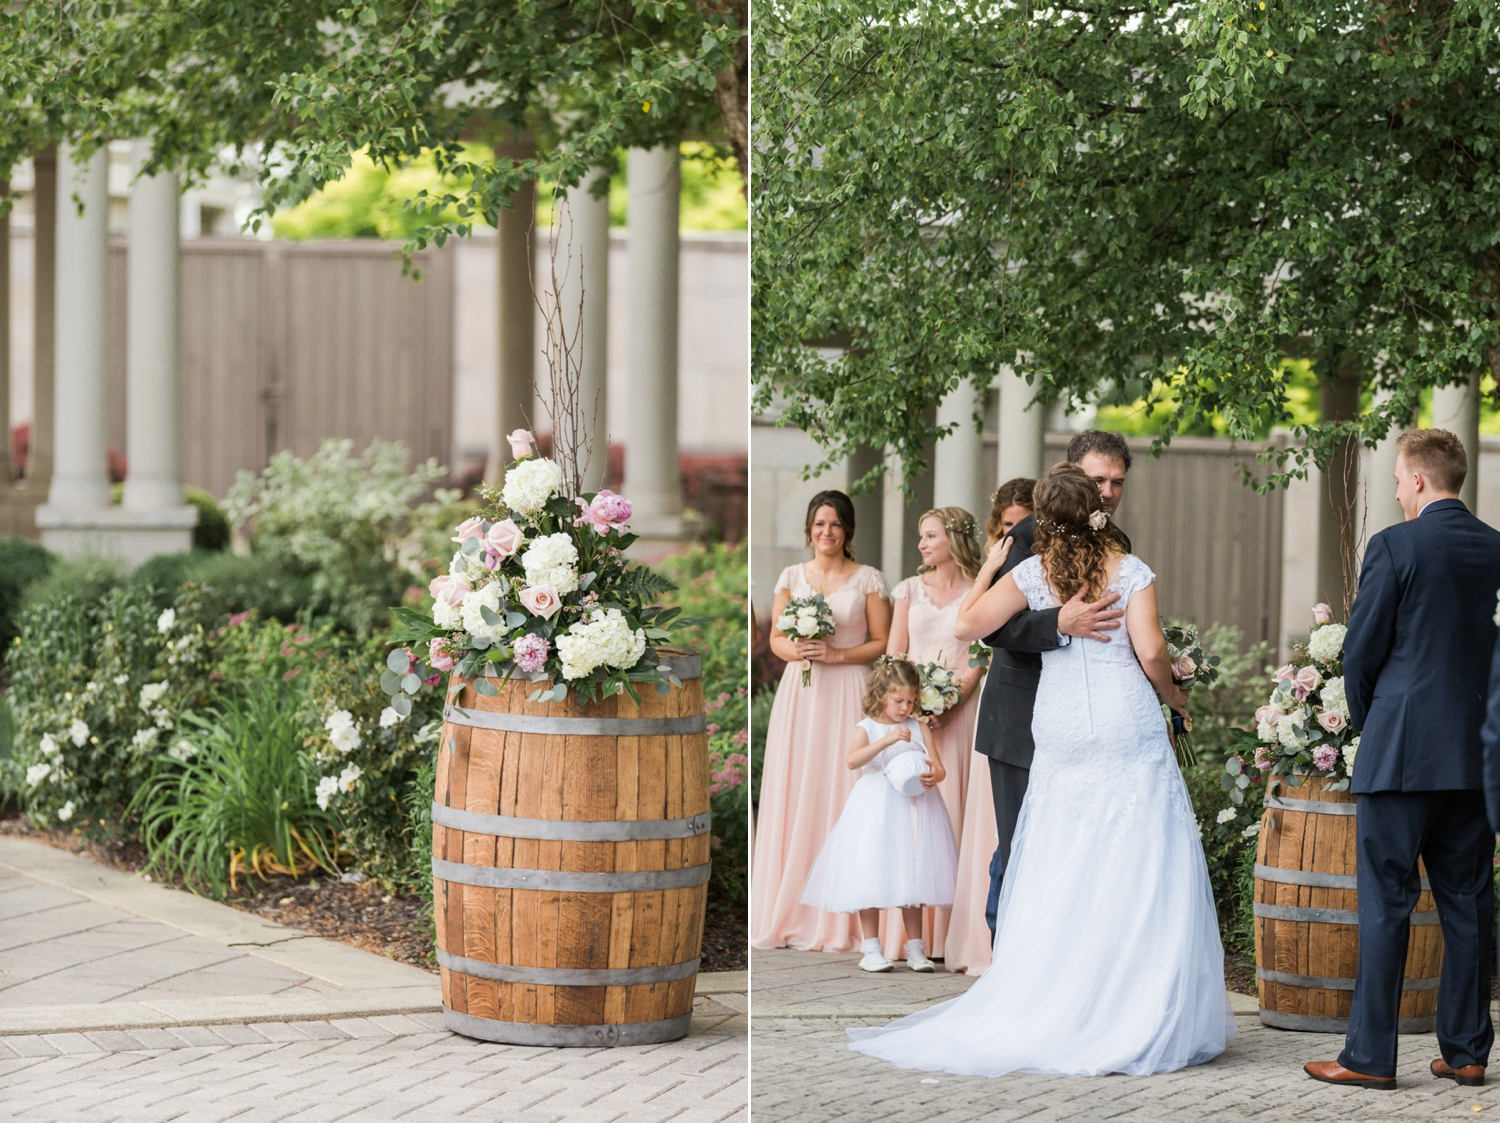 Community_Life_Center_Indianapolis_Indiana_Wedding_Photographer_Chloe_Luka_Photography_6950.jpg